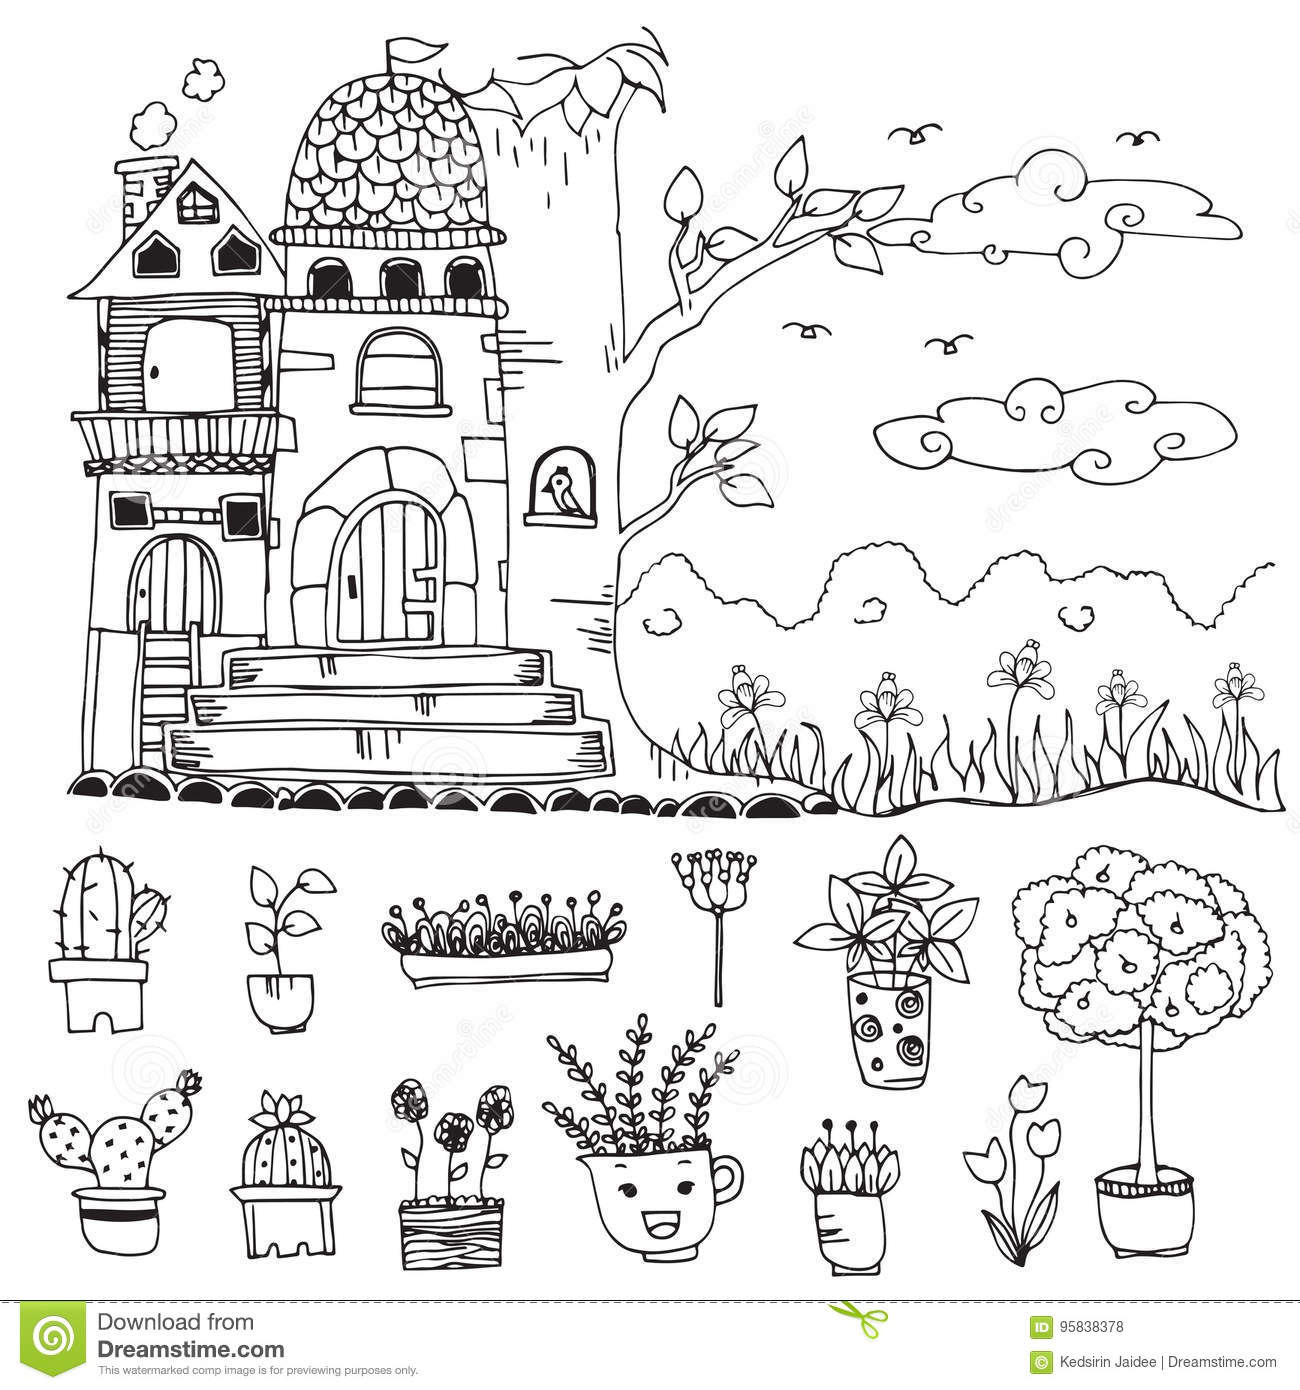 Doodle Hand Drawn Sketch Of Cute Castle And Flower On Flower Pot In